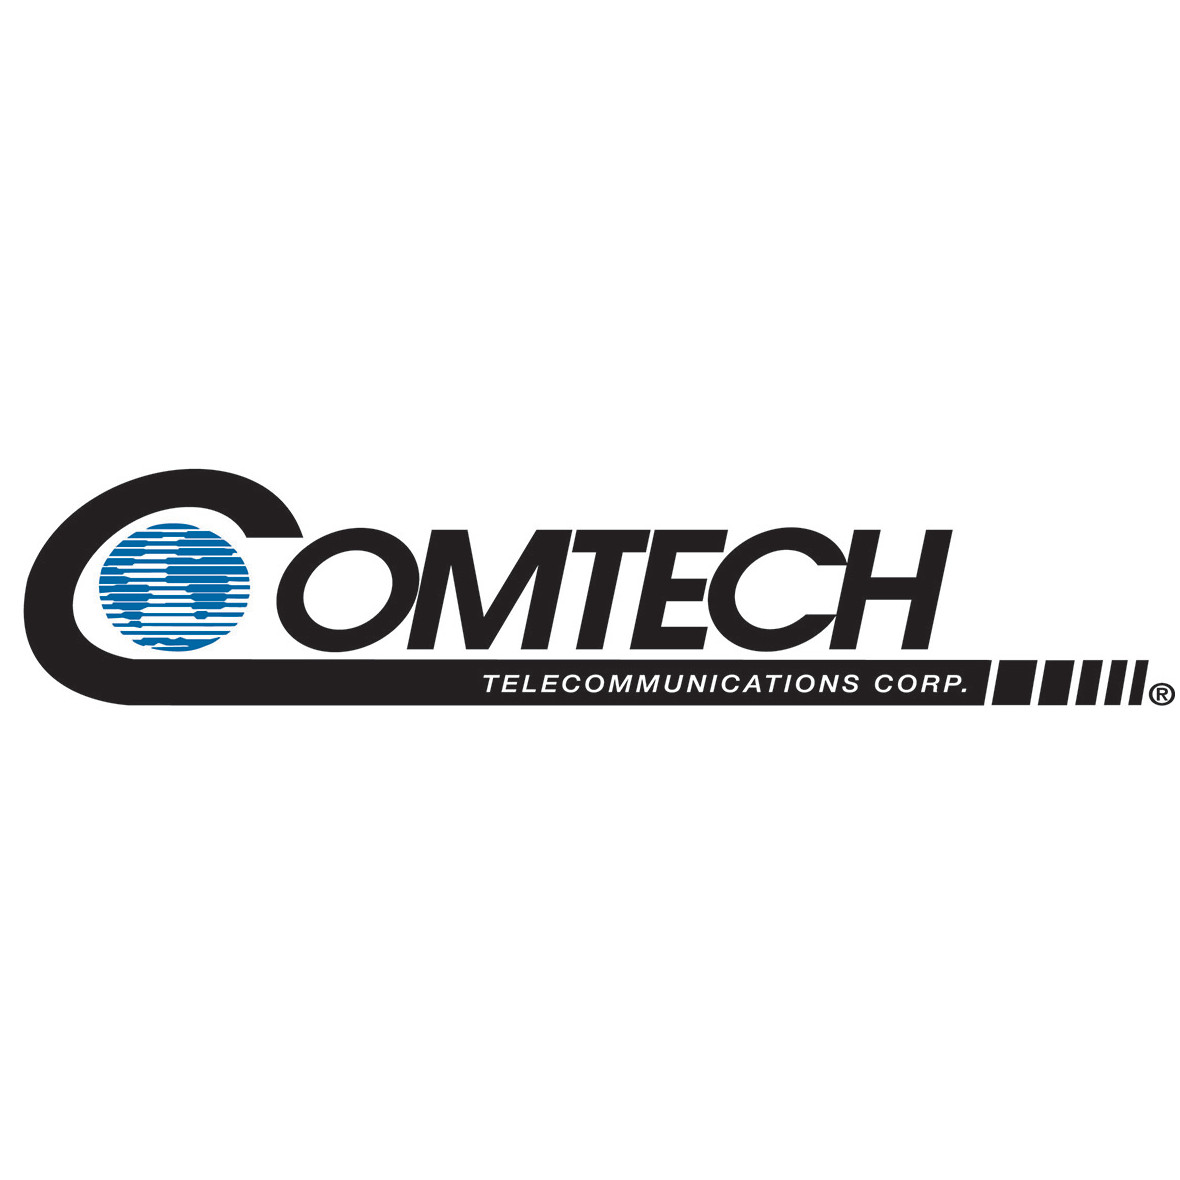 Comtech Telecommunications